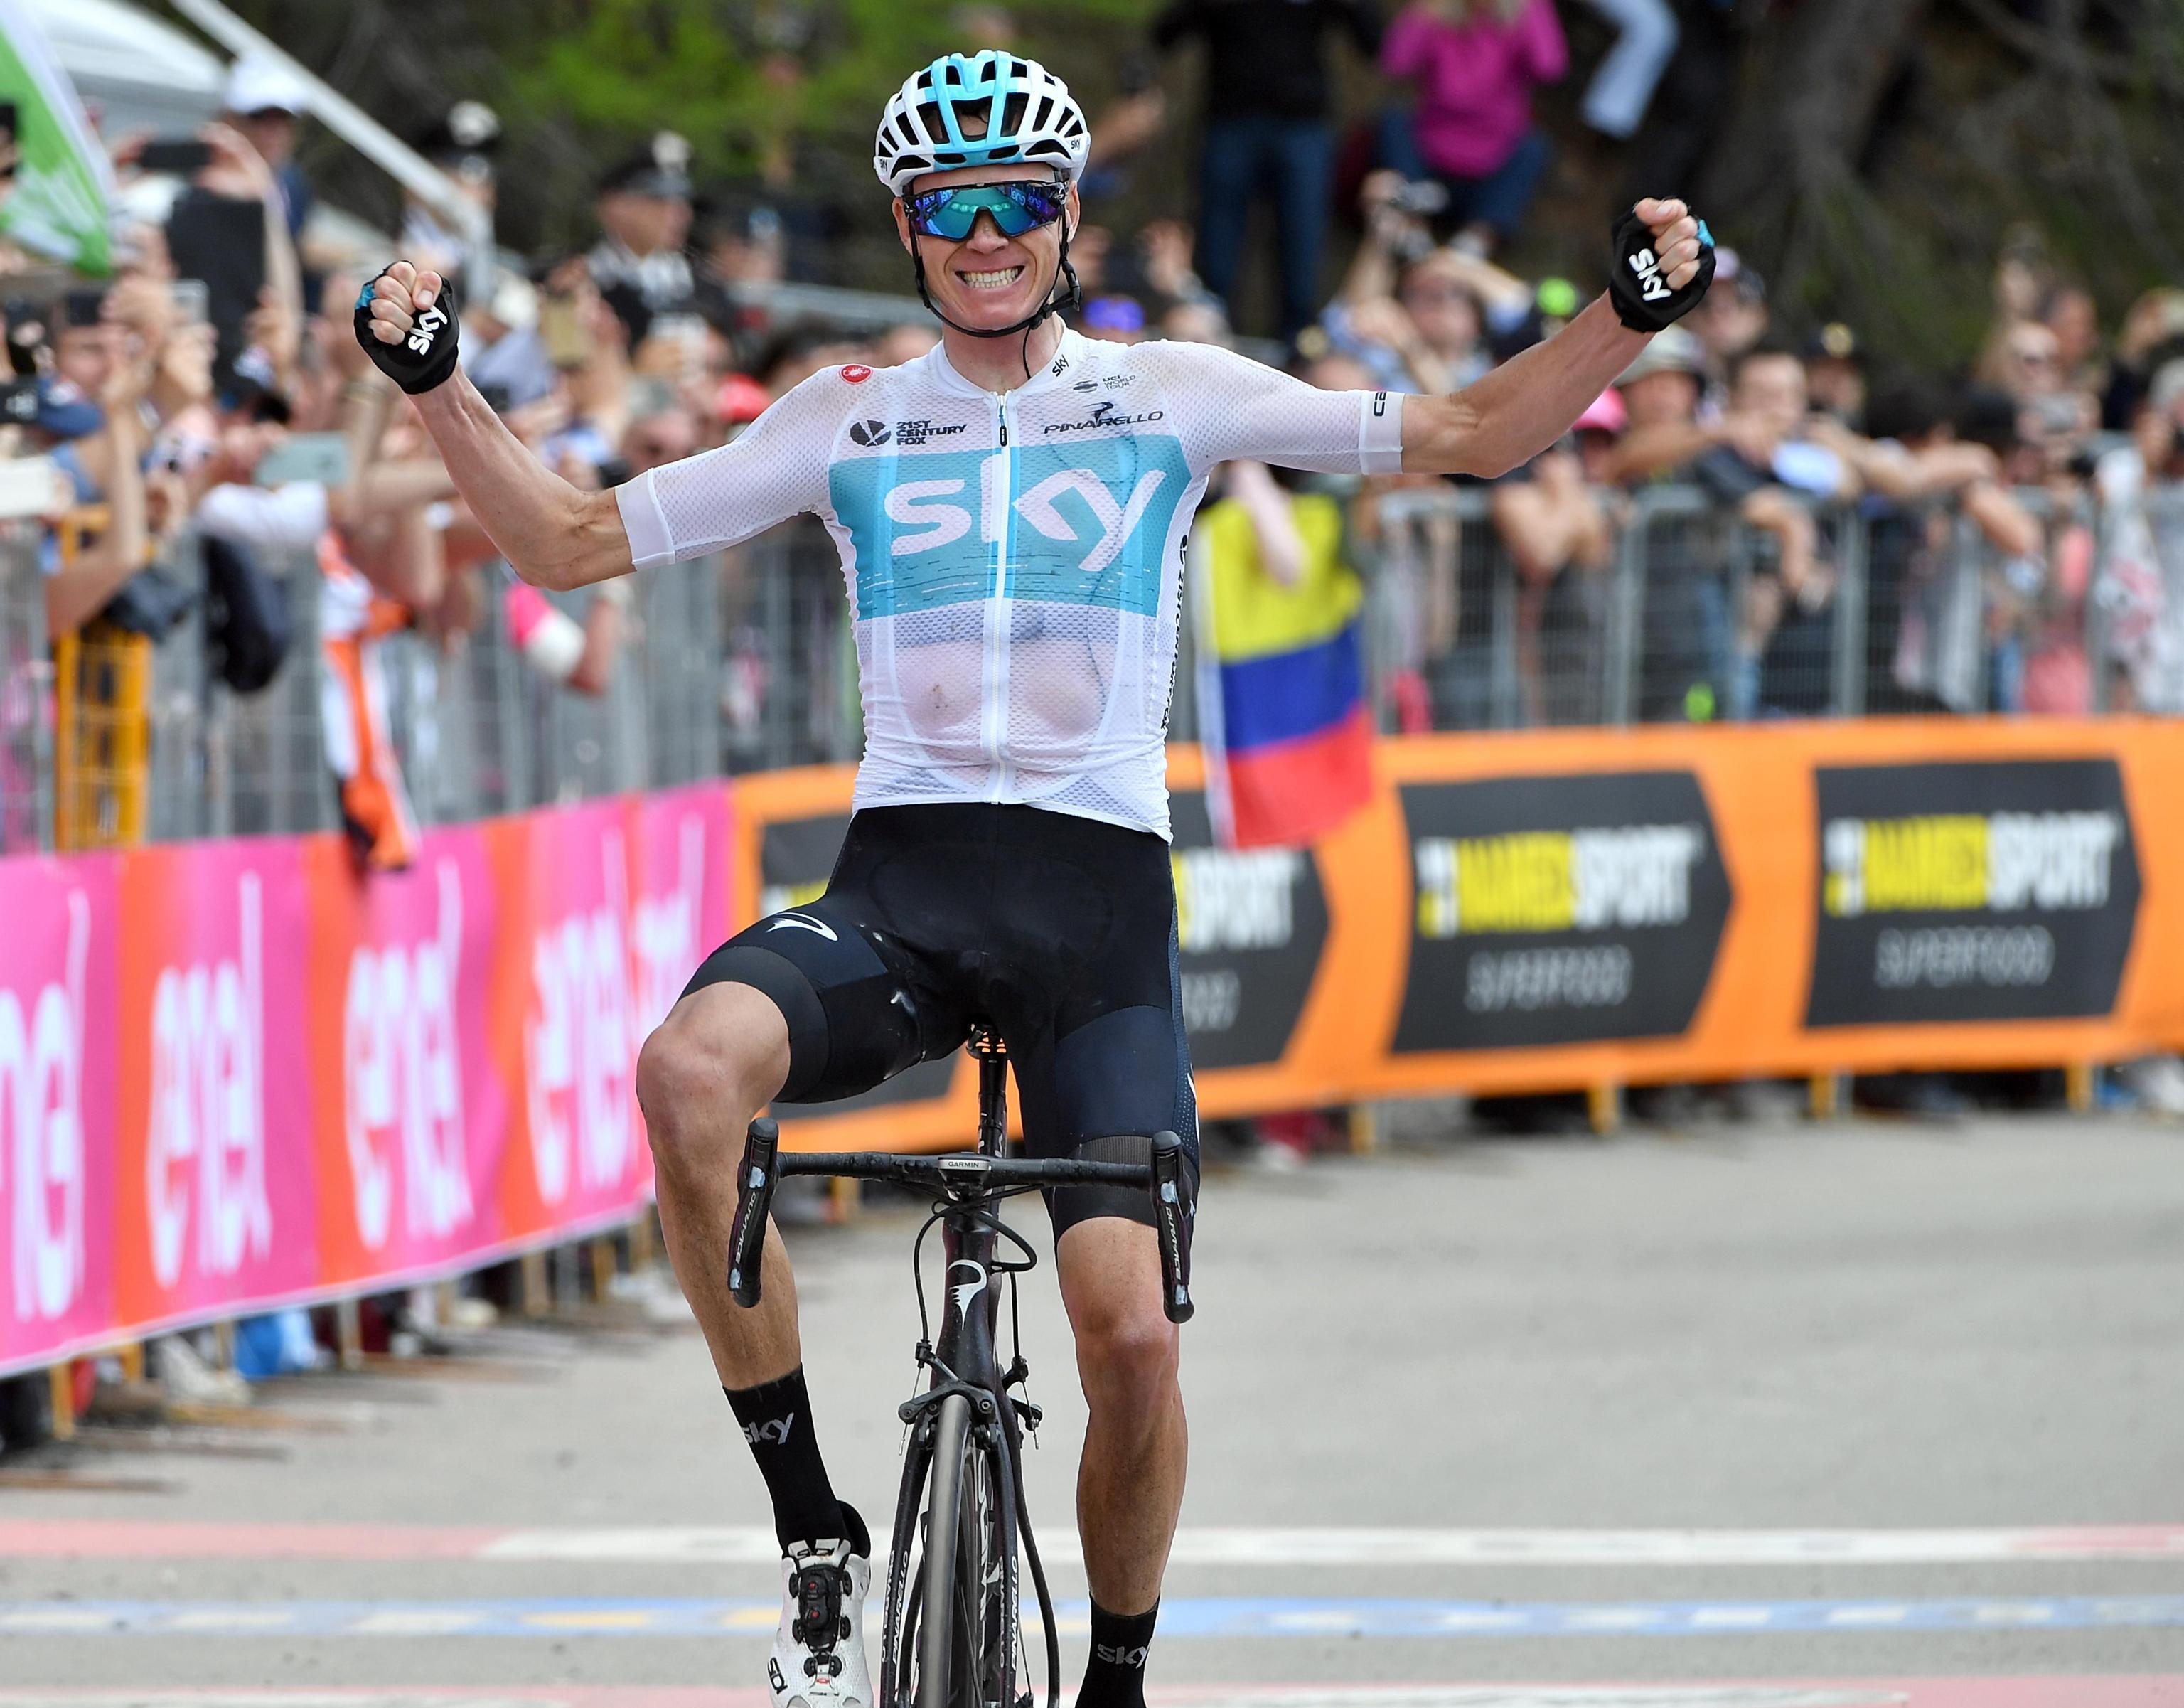 Froome went on to dominate the stage after the incident